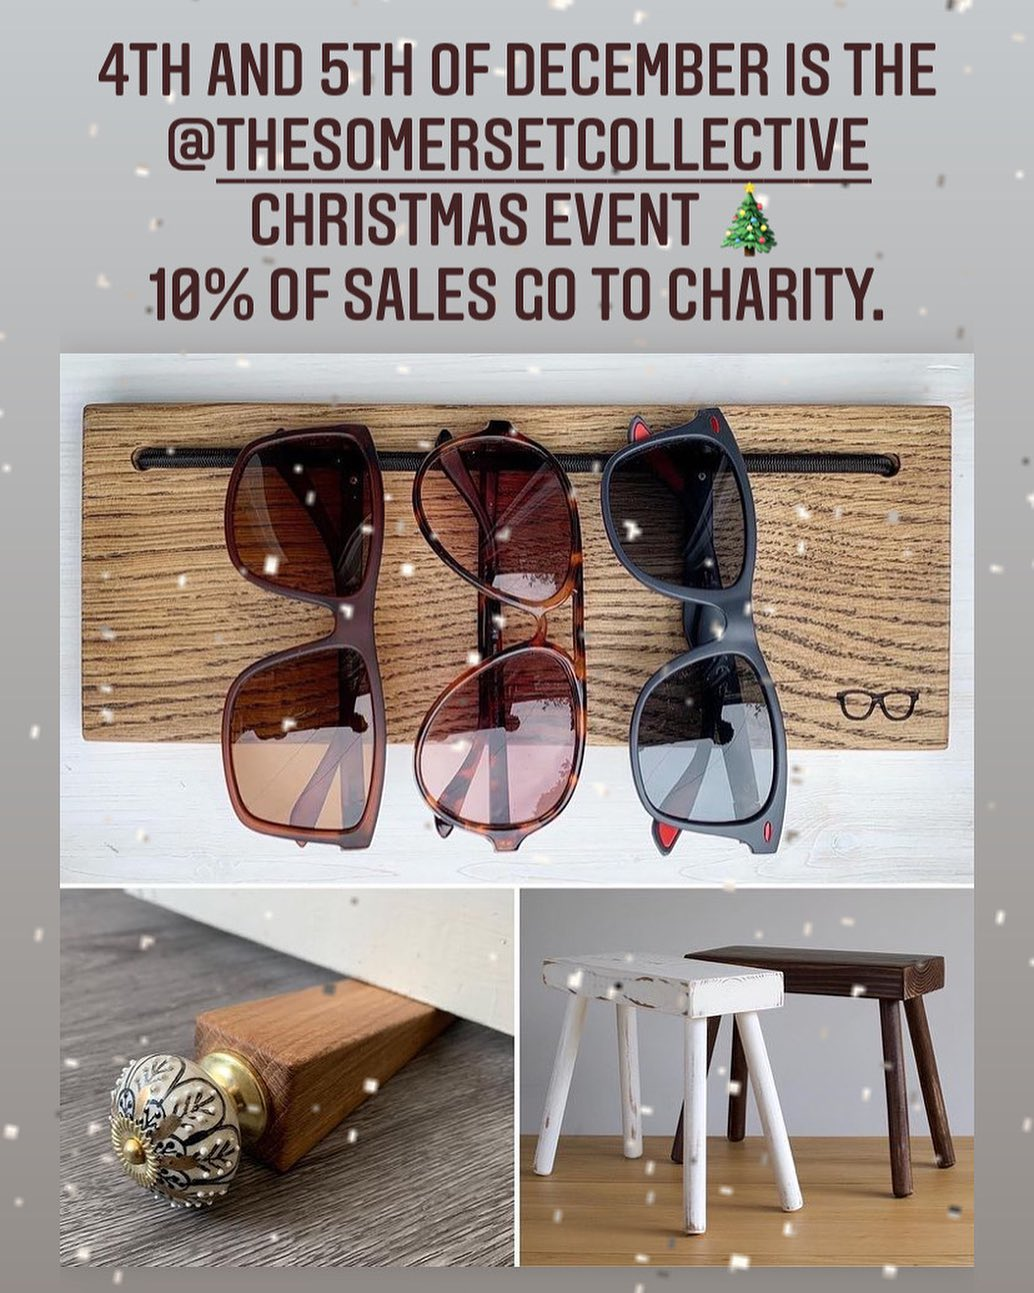 As well as the real life markets we have lined up for this weekend, @thesomersetcollective is running an online Christmas pop up event. Head over to their website to see all the talented makers taking part! The special code TSCPOPUP unlocks offers and all traders will be donating 10% to Dorset and Somerset Air Ambulance. ...#popup #market #somerset #shopsmall #shophandmade #supportsmallbusiness #donate #christmas #craft #festive #shopping